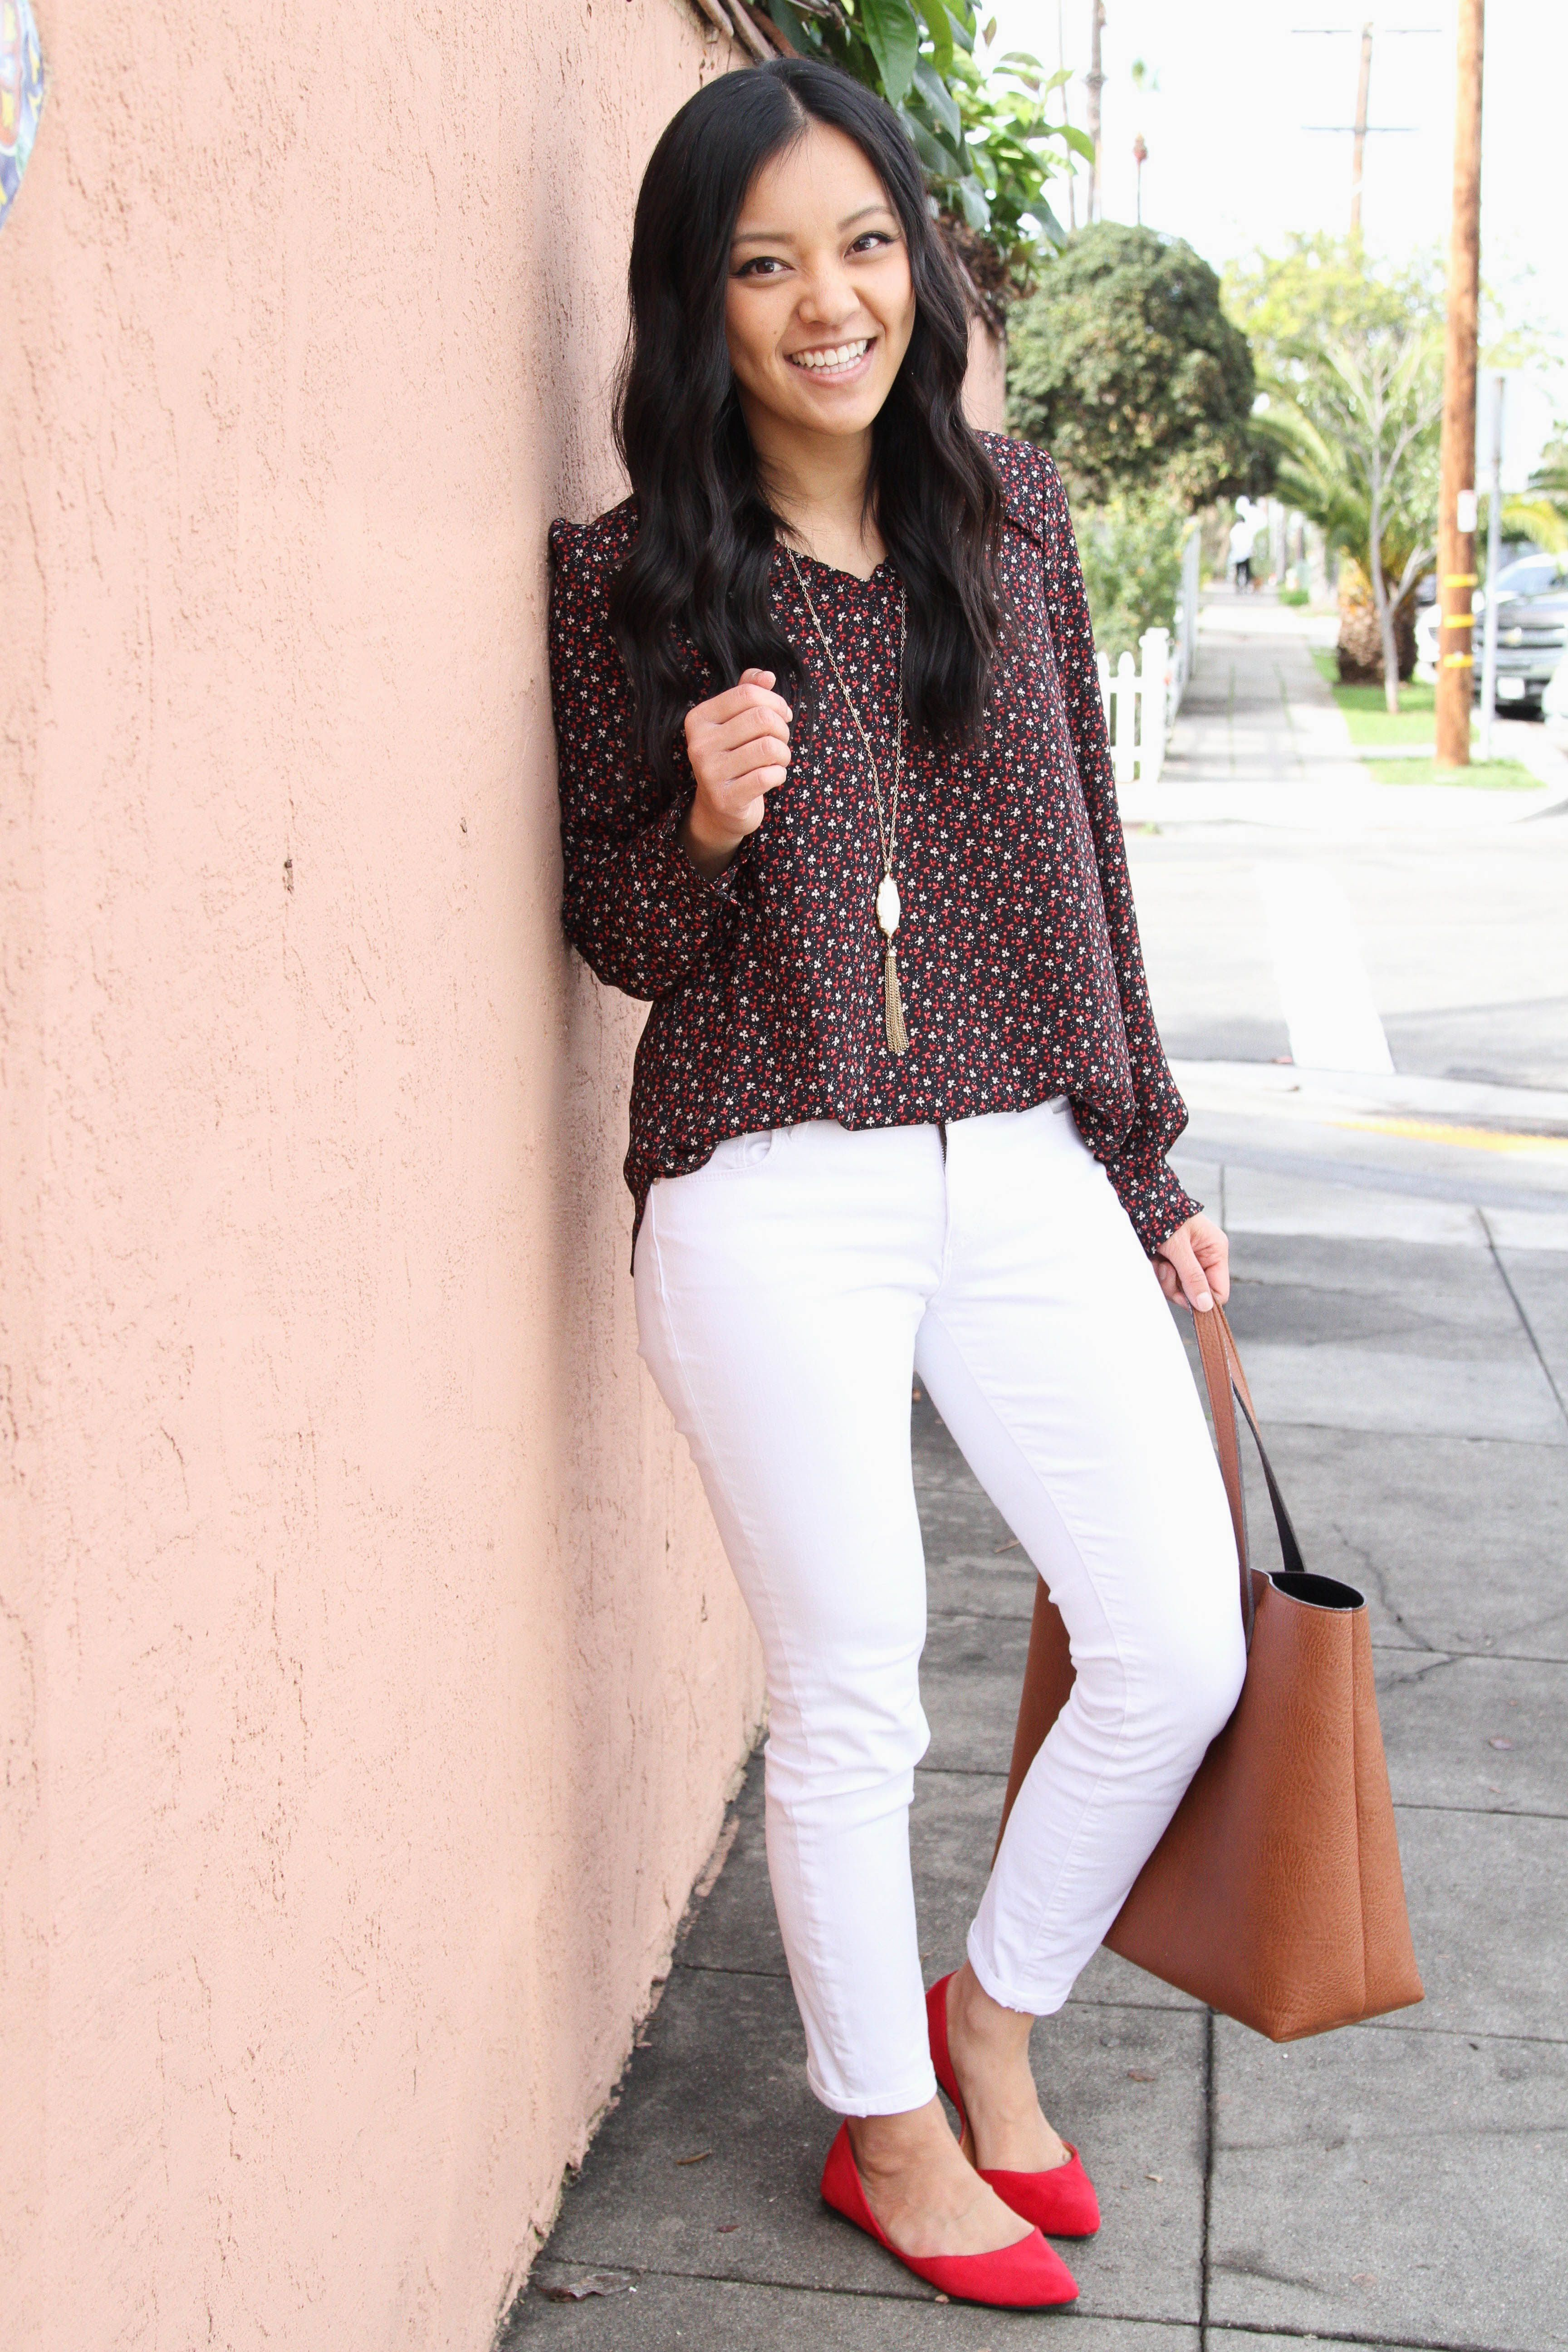 a48905e4b5544 Floral Top + White Skinnies + Tan Tote + Red Flats + White pendant